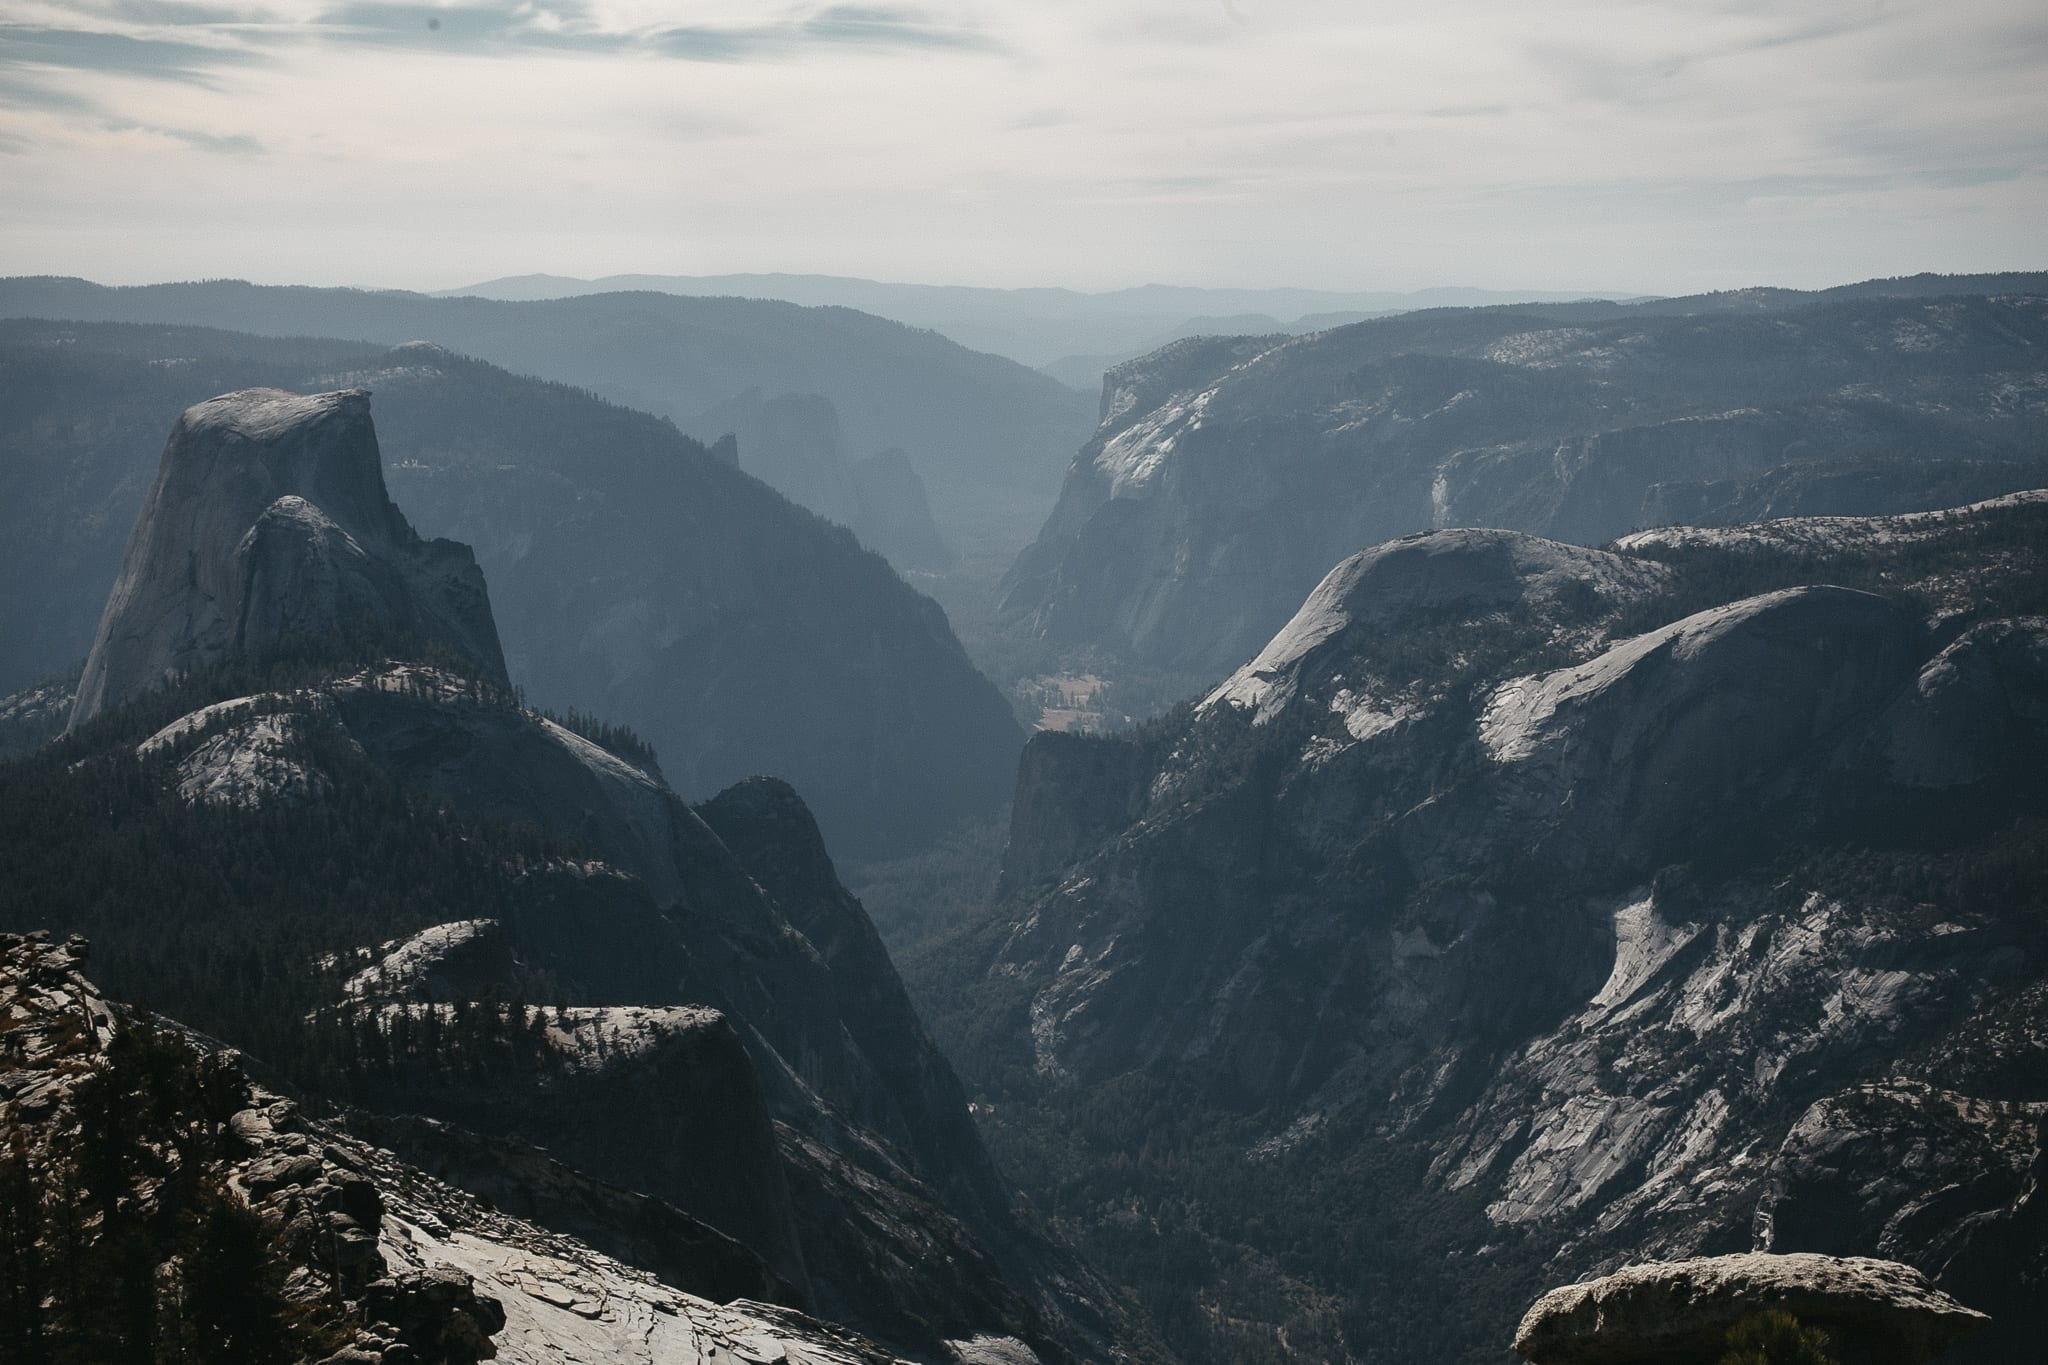 clouds-rest-yosemite-california-engagement-lifestyle-adventure-photographer-12